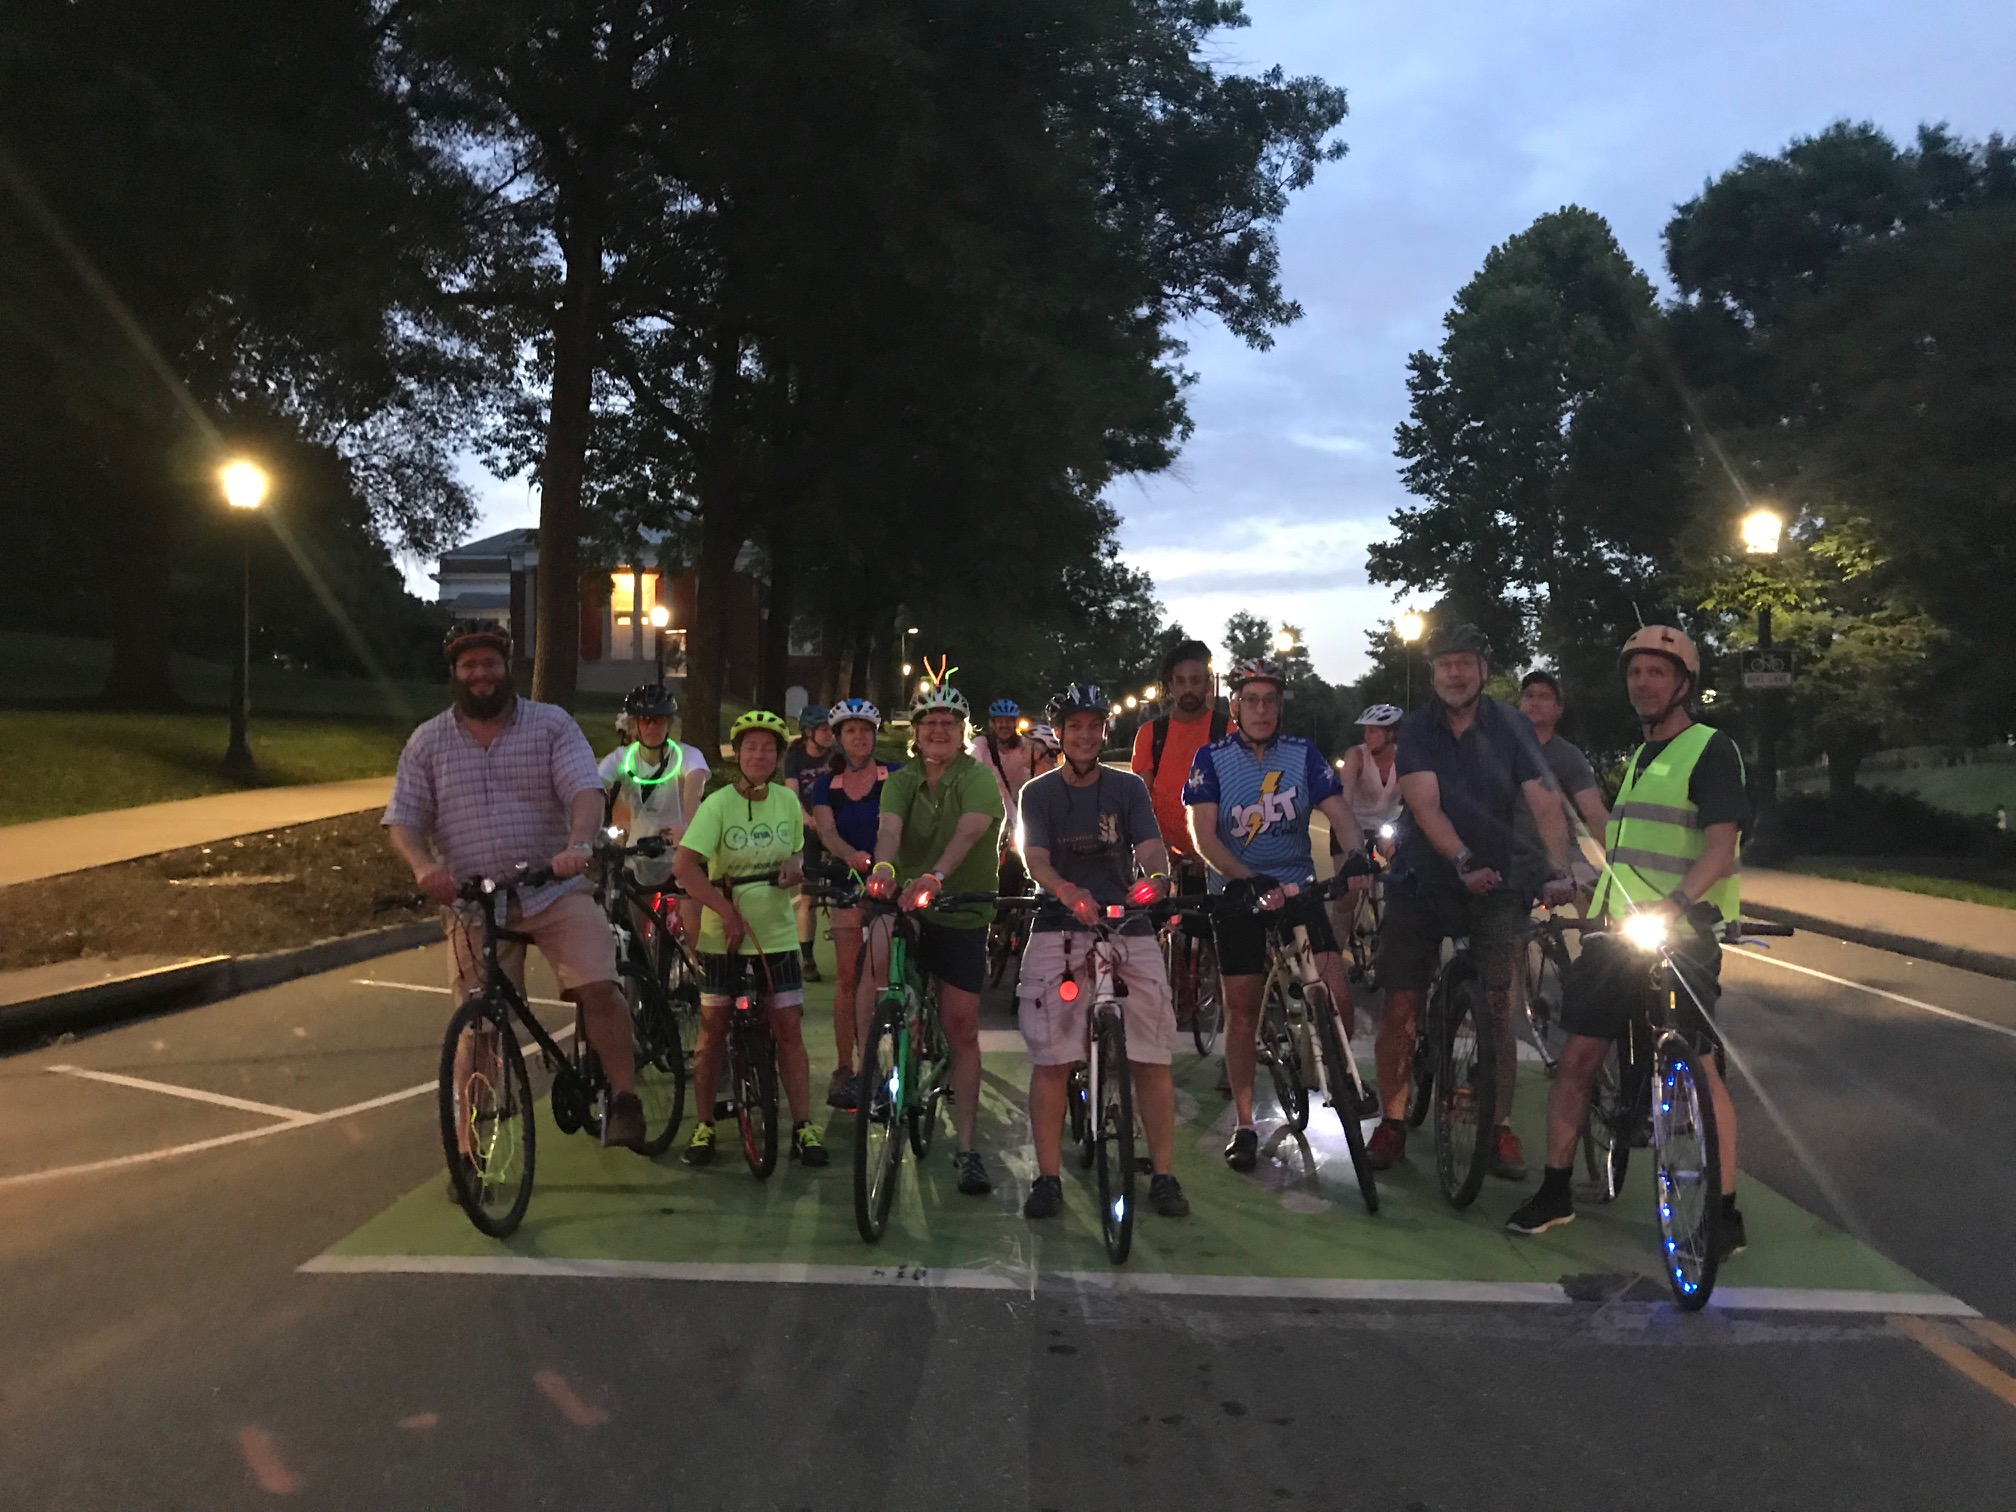 a group of people with their bikes, with lights and reflective gear at night